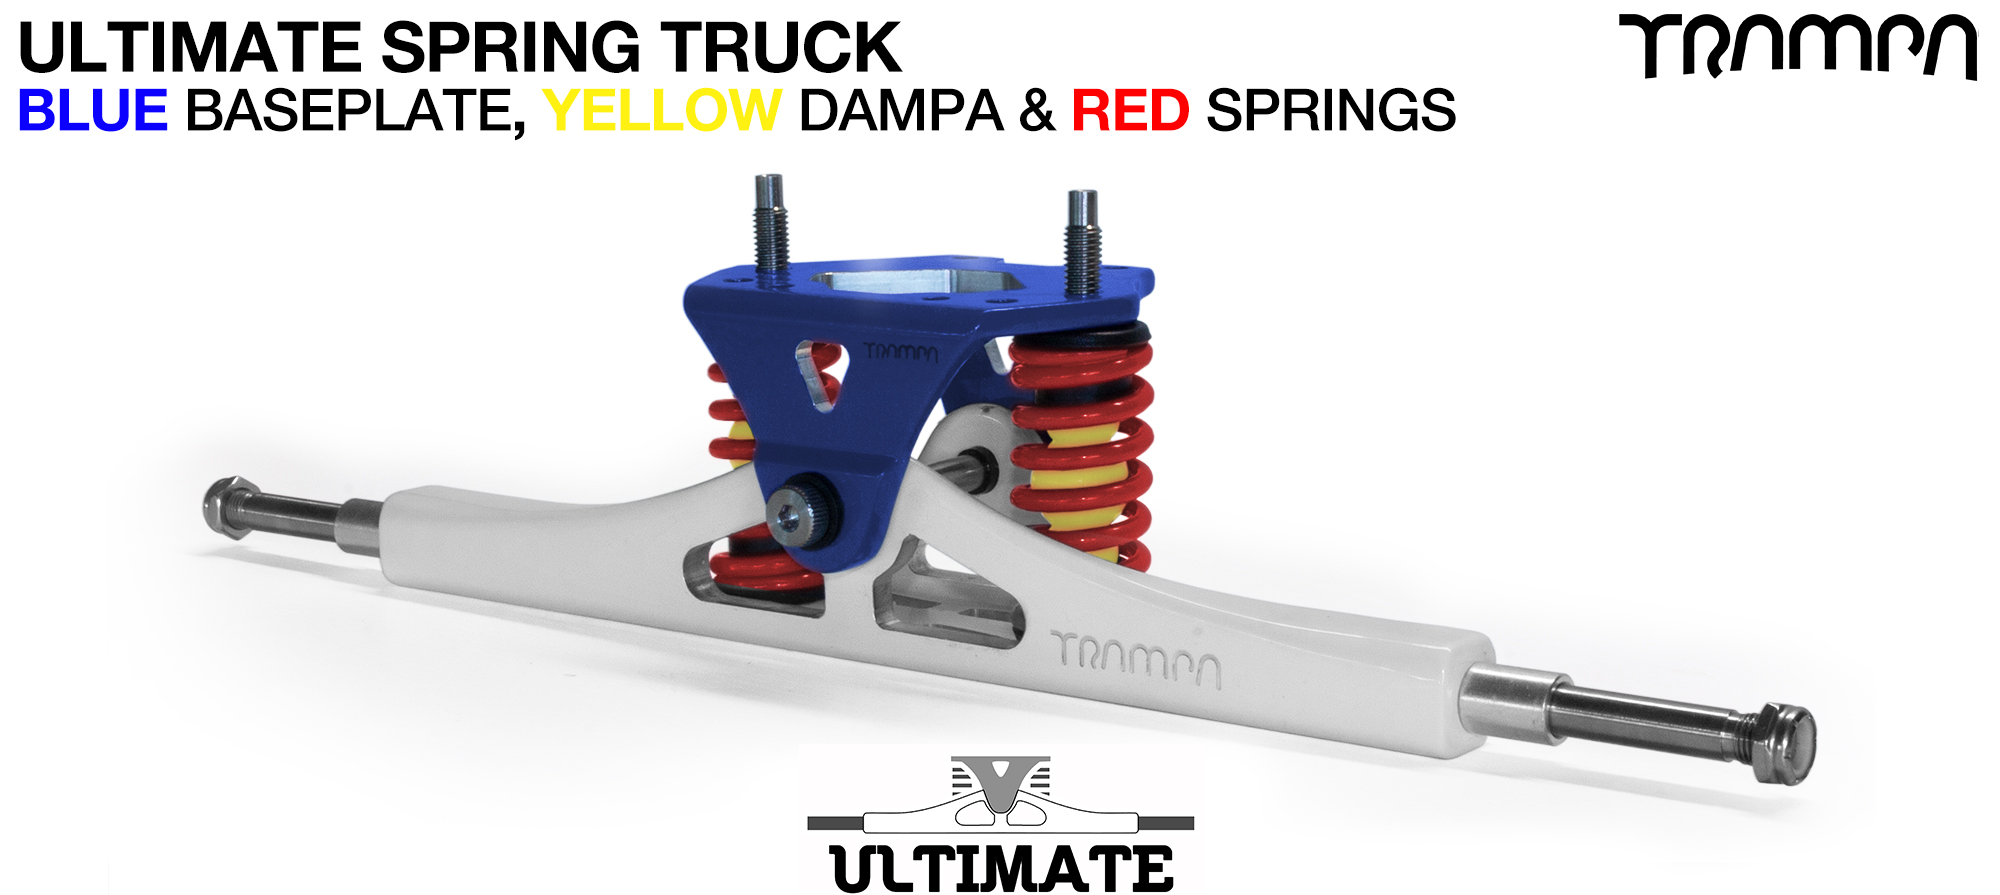 ULTIMATE ATB TRUCK - WHITE ATB Hanger with TITANIUM Axles & Kingpin & NAVY Baseplate